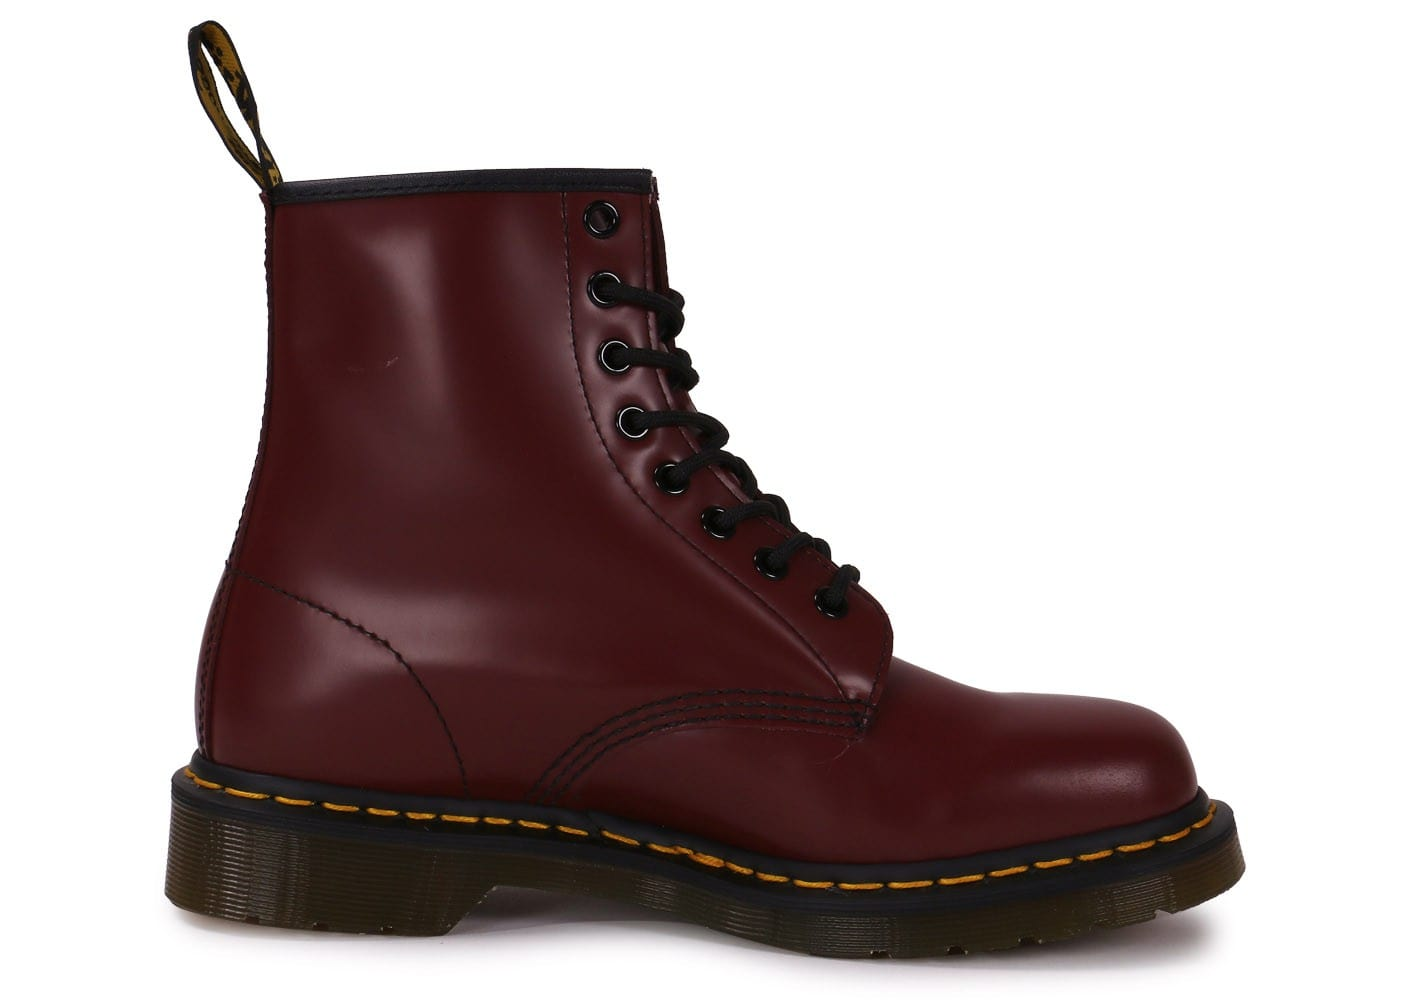 dr martens 1460 cherry red chaussures baskets homme chausport. Black Bedroom Furniture Sets. Home Design Ideas